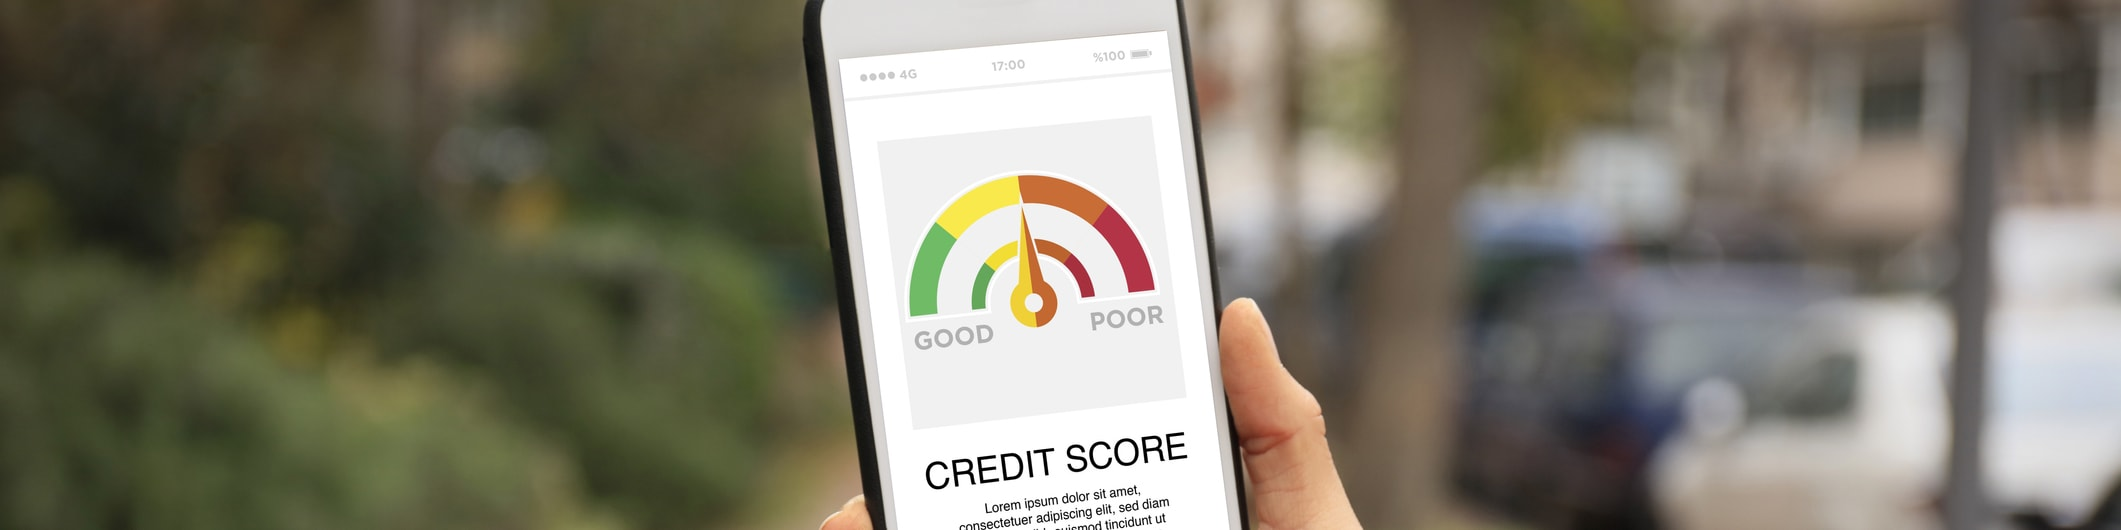 credit score on mobile